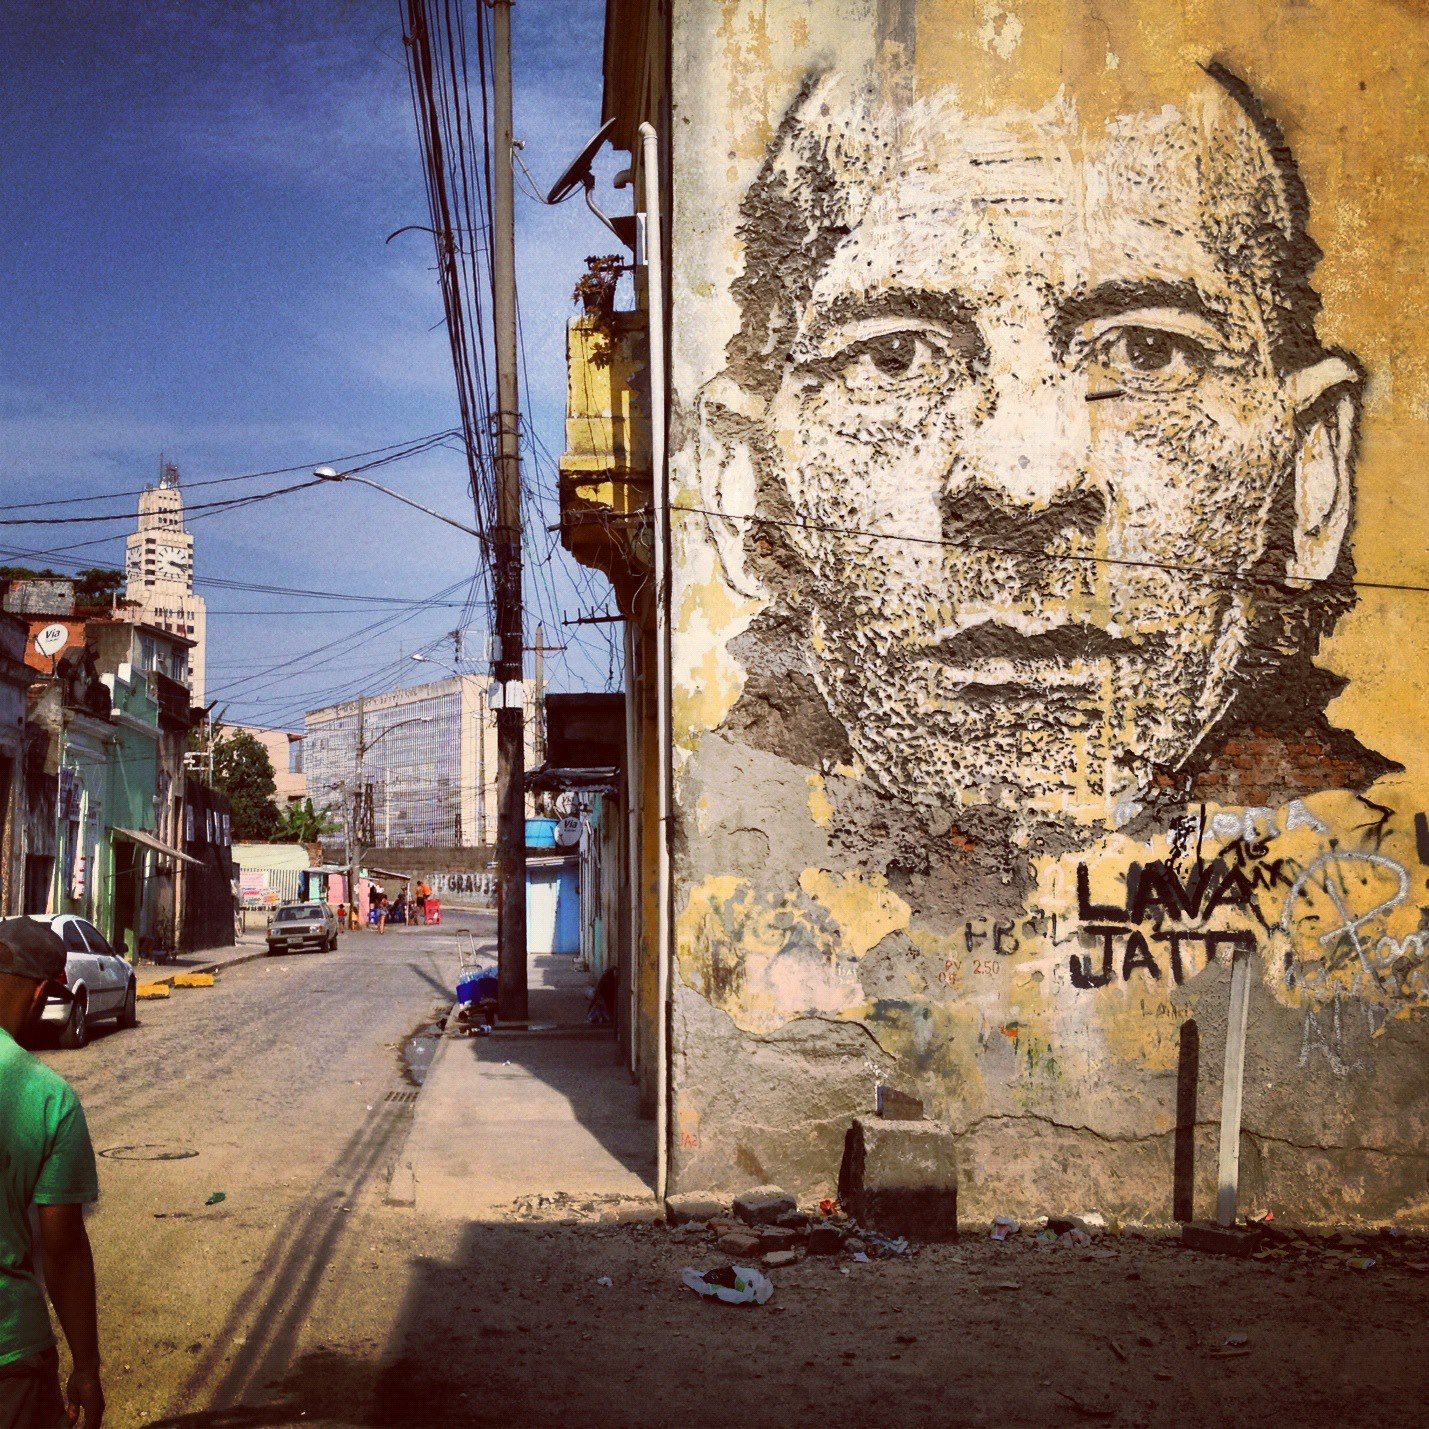 streetartnews_vhils_brazil_part3.jpg